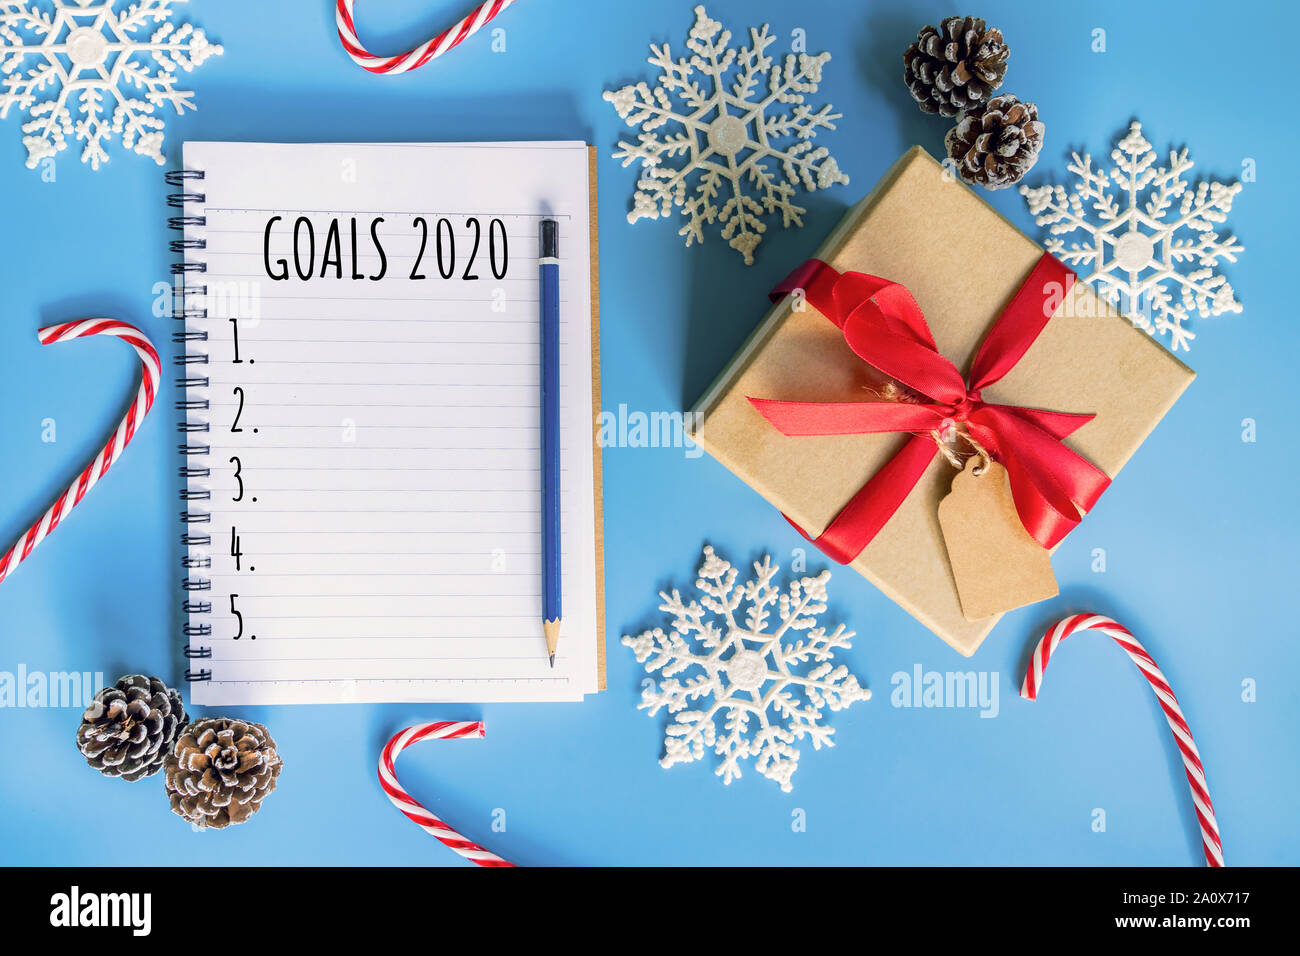 Christmas List 2020.2020 New Year Concept Goals 2020 List In Notepad Gift Box